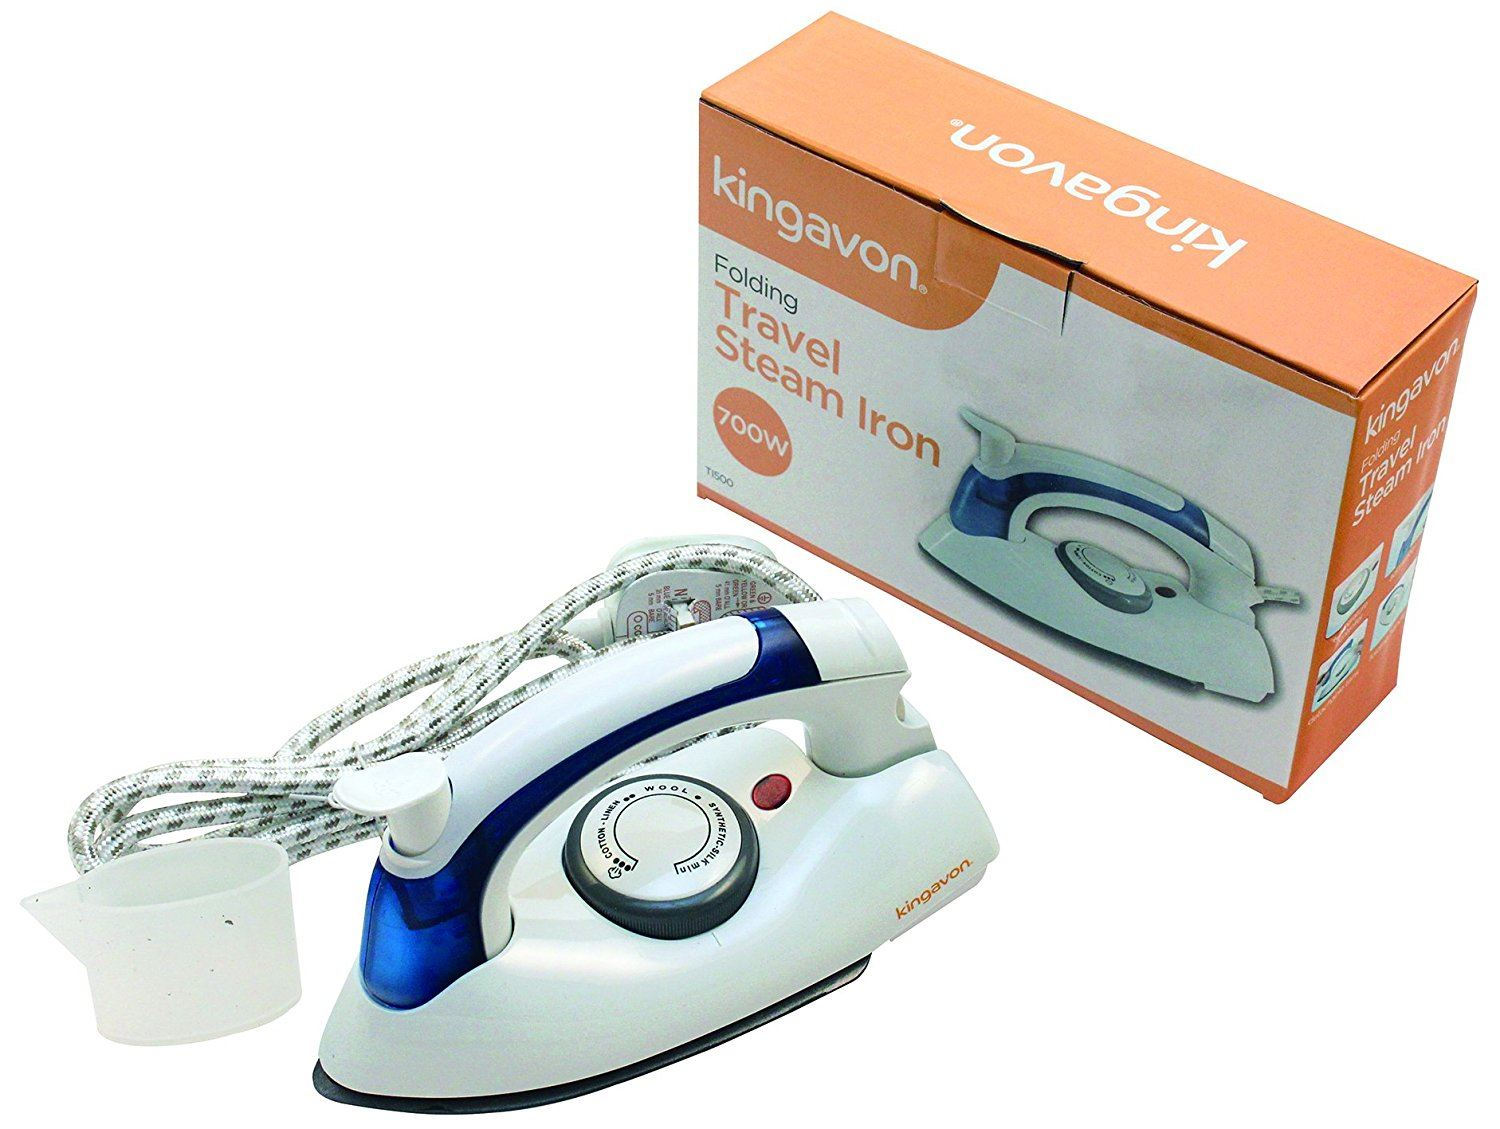 1 X Kingavon Travel Portable Iron 700w White